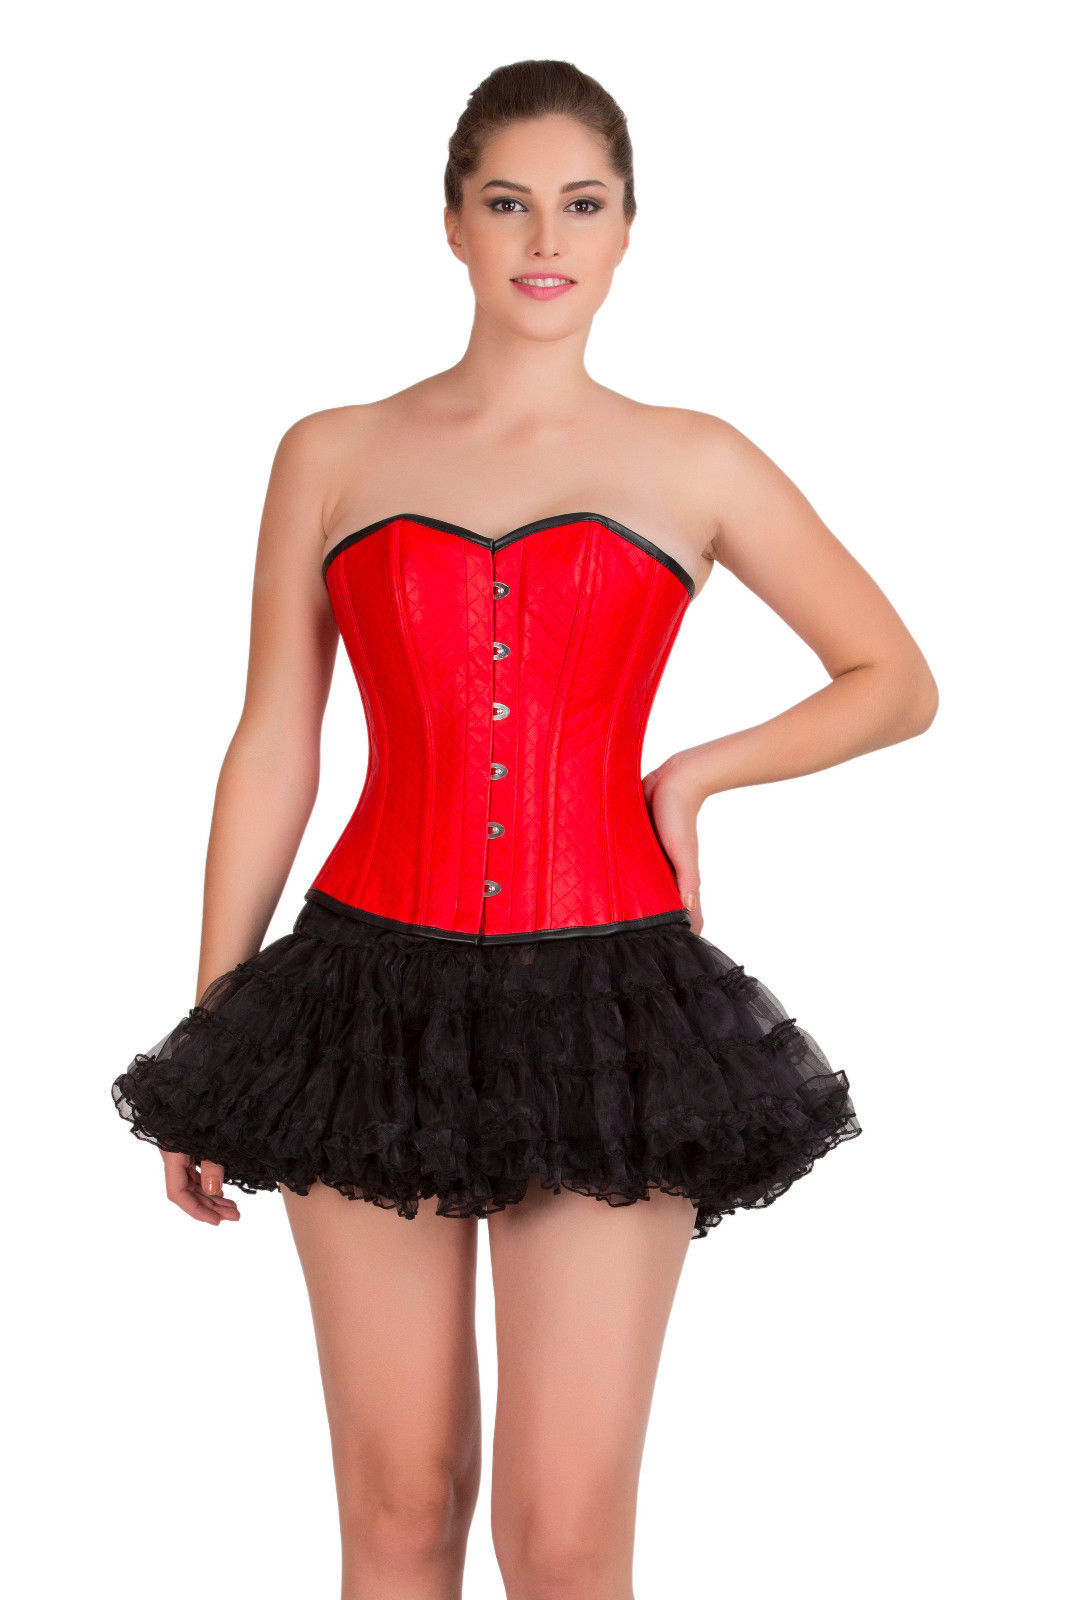 f886b2f45ec 57. 57. Previous. Red Leather Gothic Steampunk Overbust Top   Black Tissue  Tutu Skirt Corset Dress